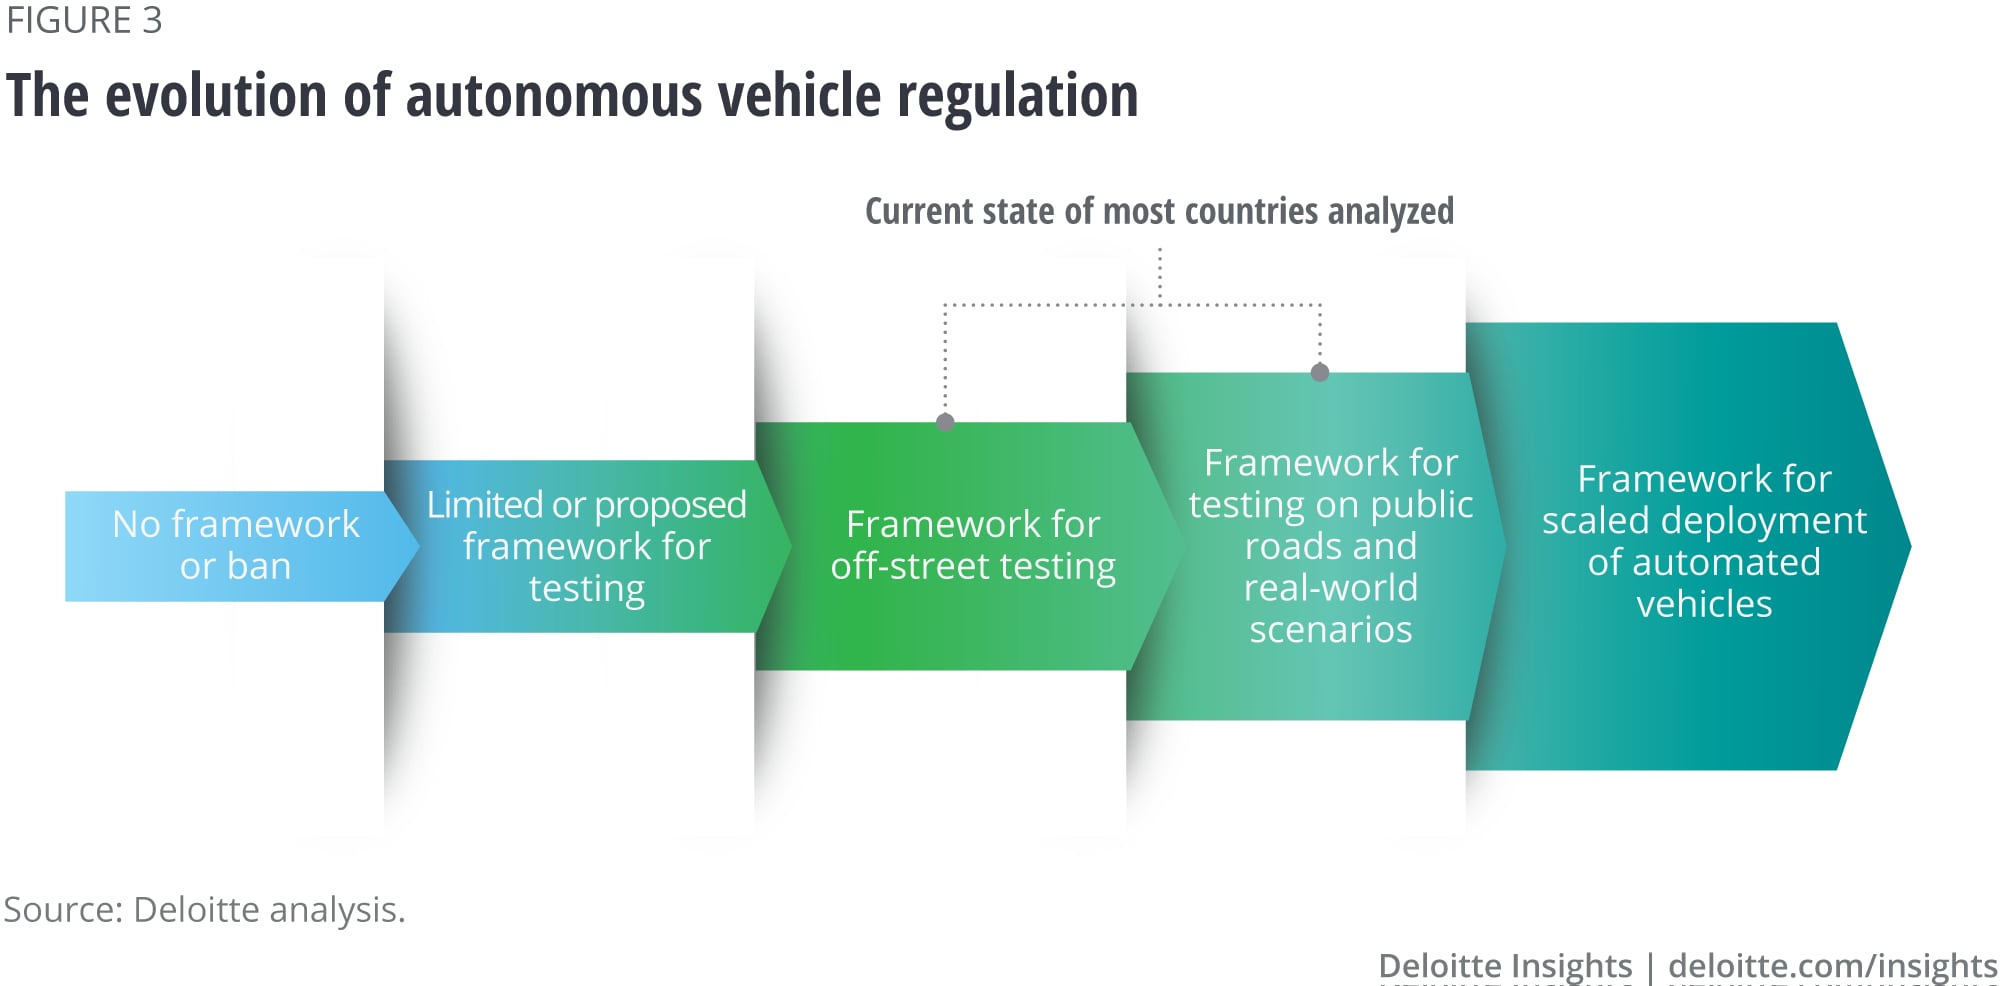 The evolution of autonomous vehicle regulation